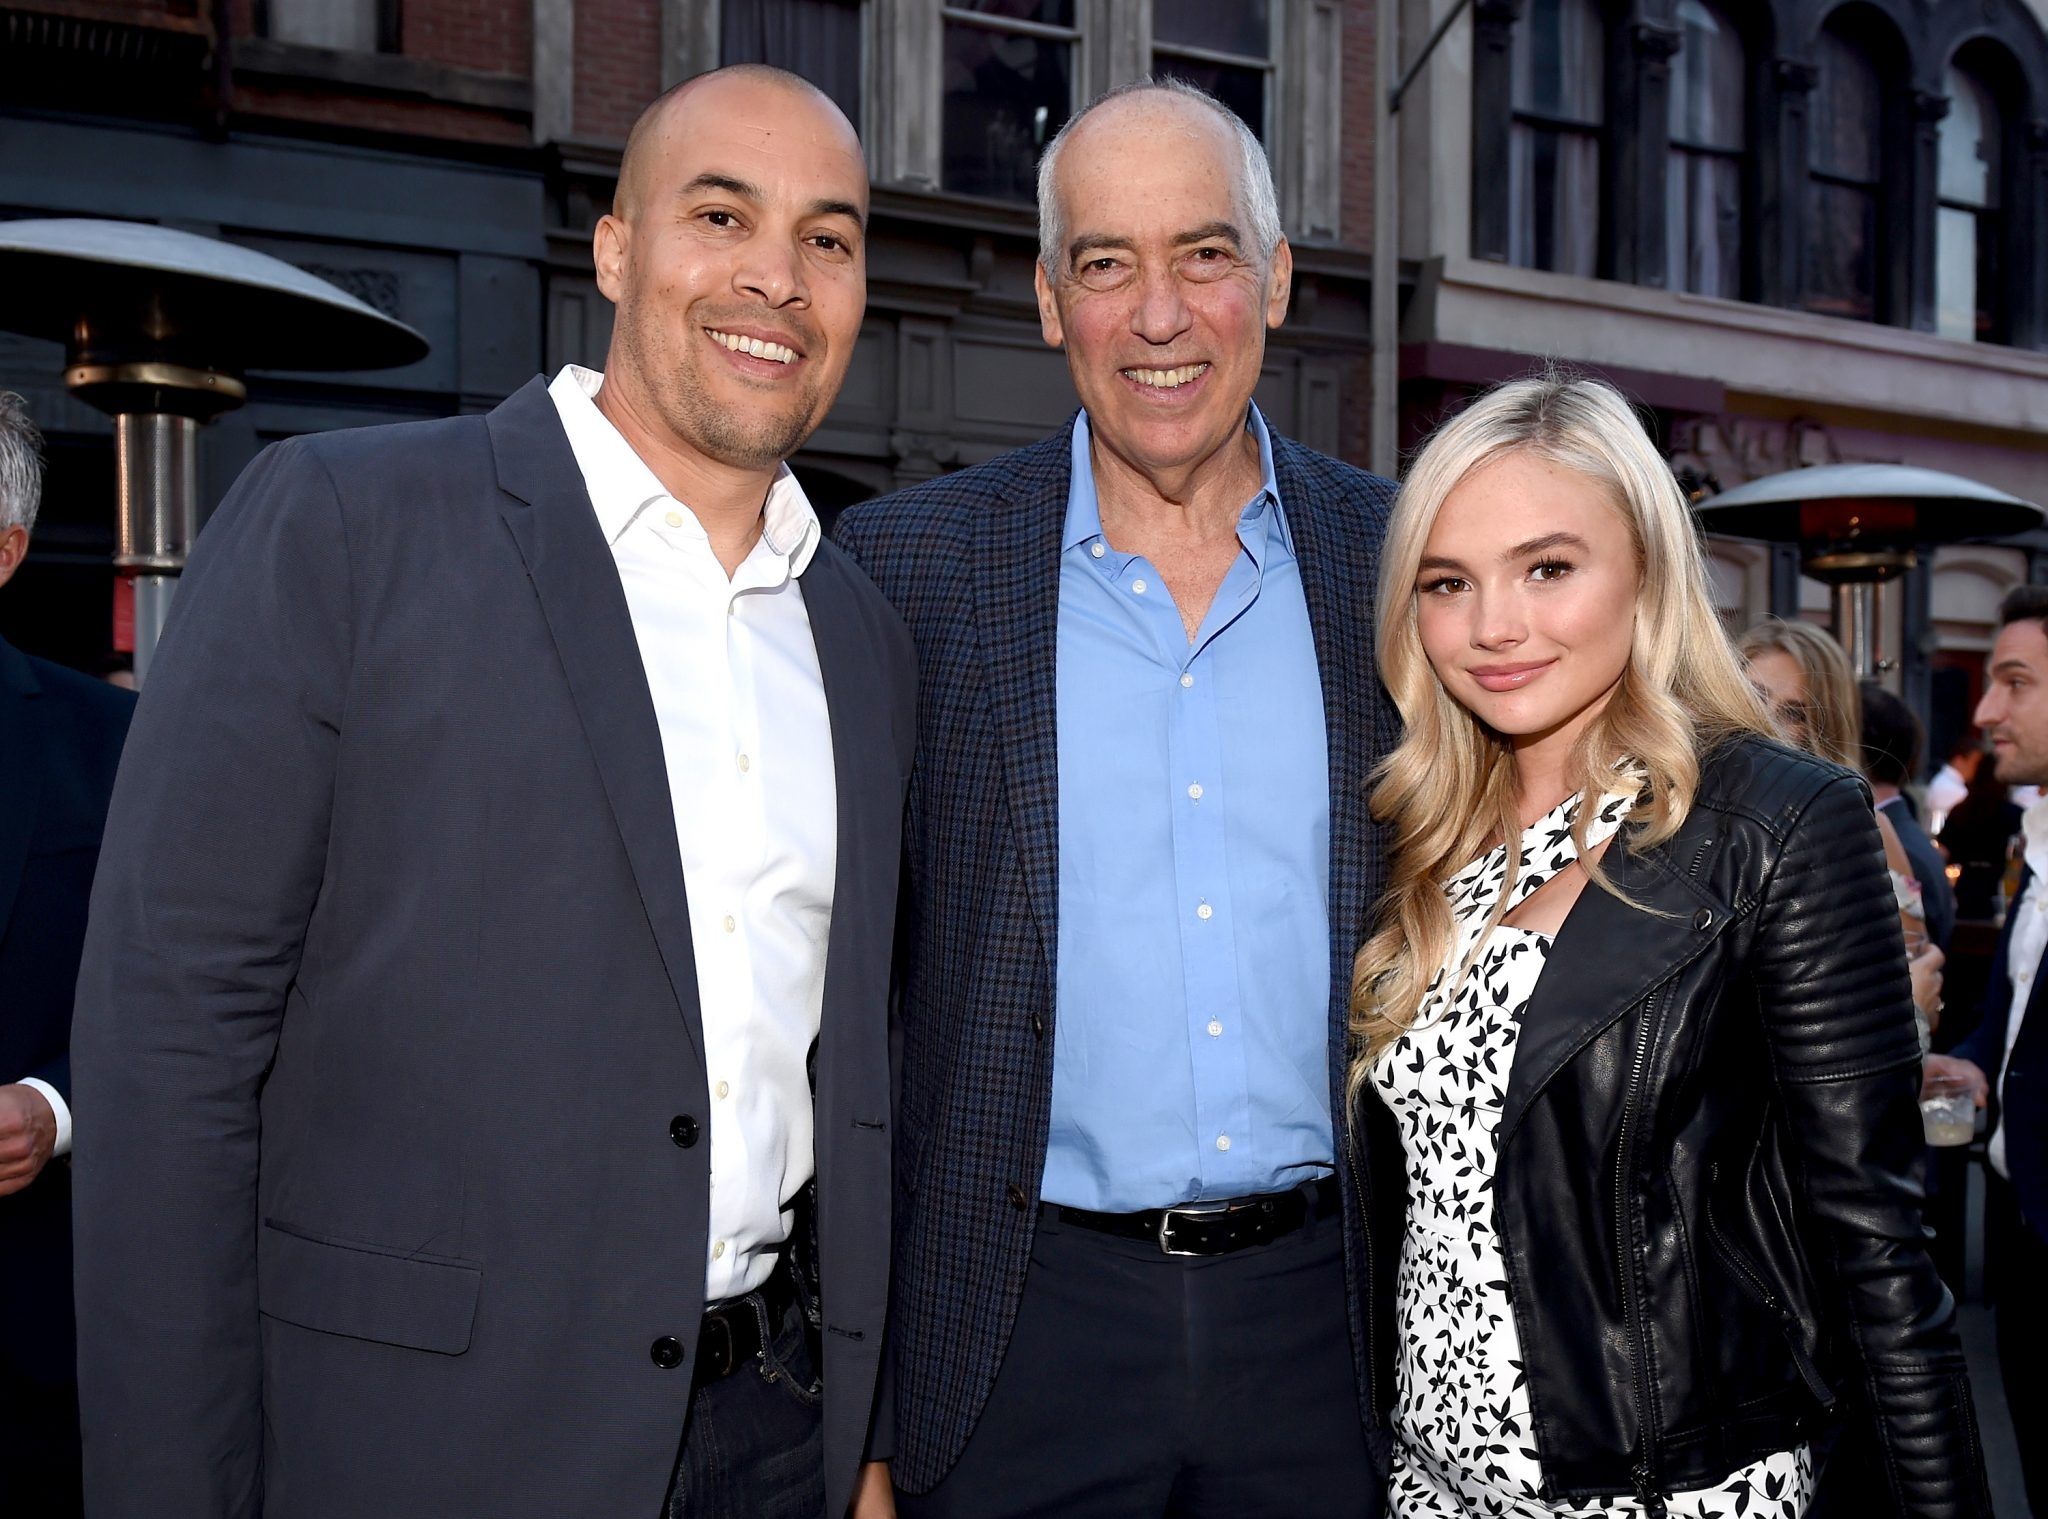 (L-R) Coby Bell (The Gift); Fox Television Group chairman and CEO Gary Newman; and Natalie Alyn Lind (The Gifted) attend the Twentieth Century Fox Television Los Angeles Screening Gala at the Fox Studio lot on May 25, 2017 (Photo by Frank Micelotta/Fox/PictureGroup)